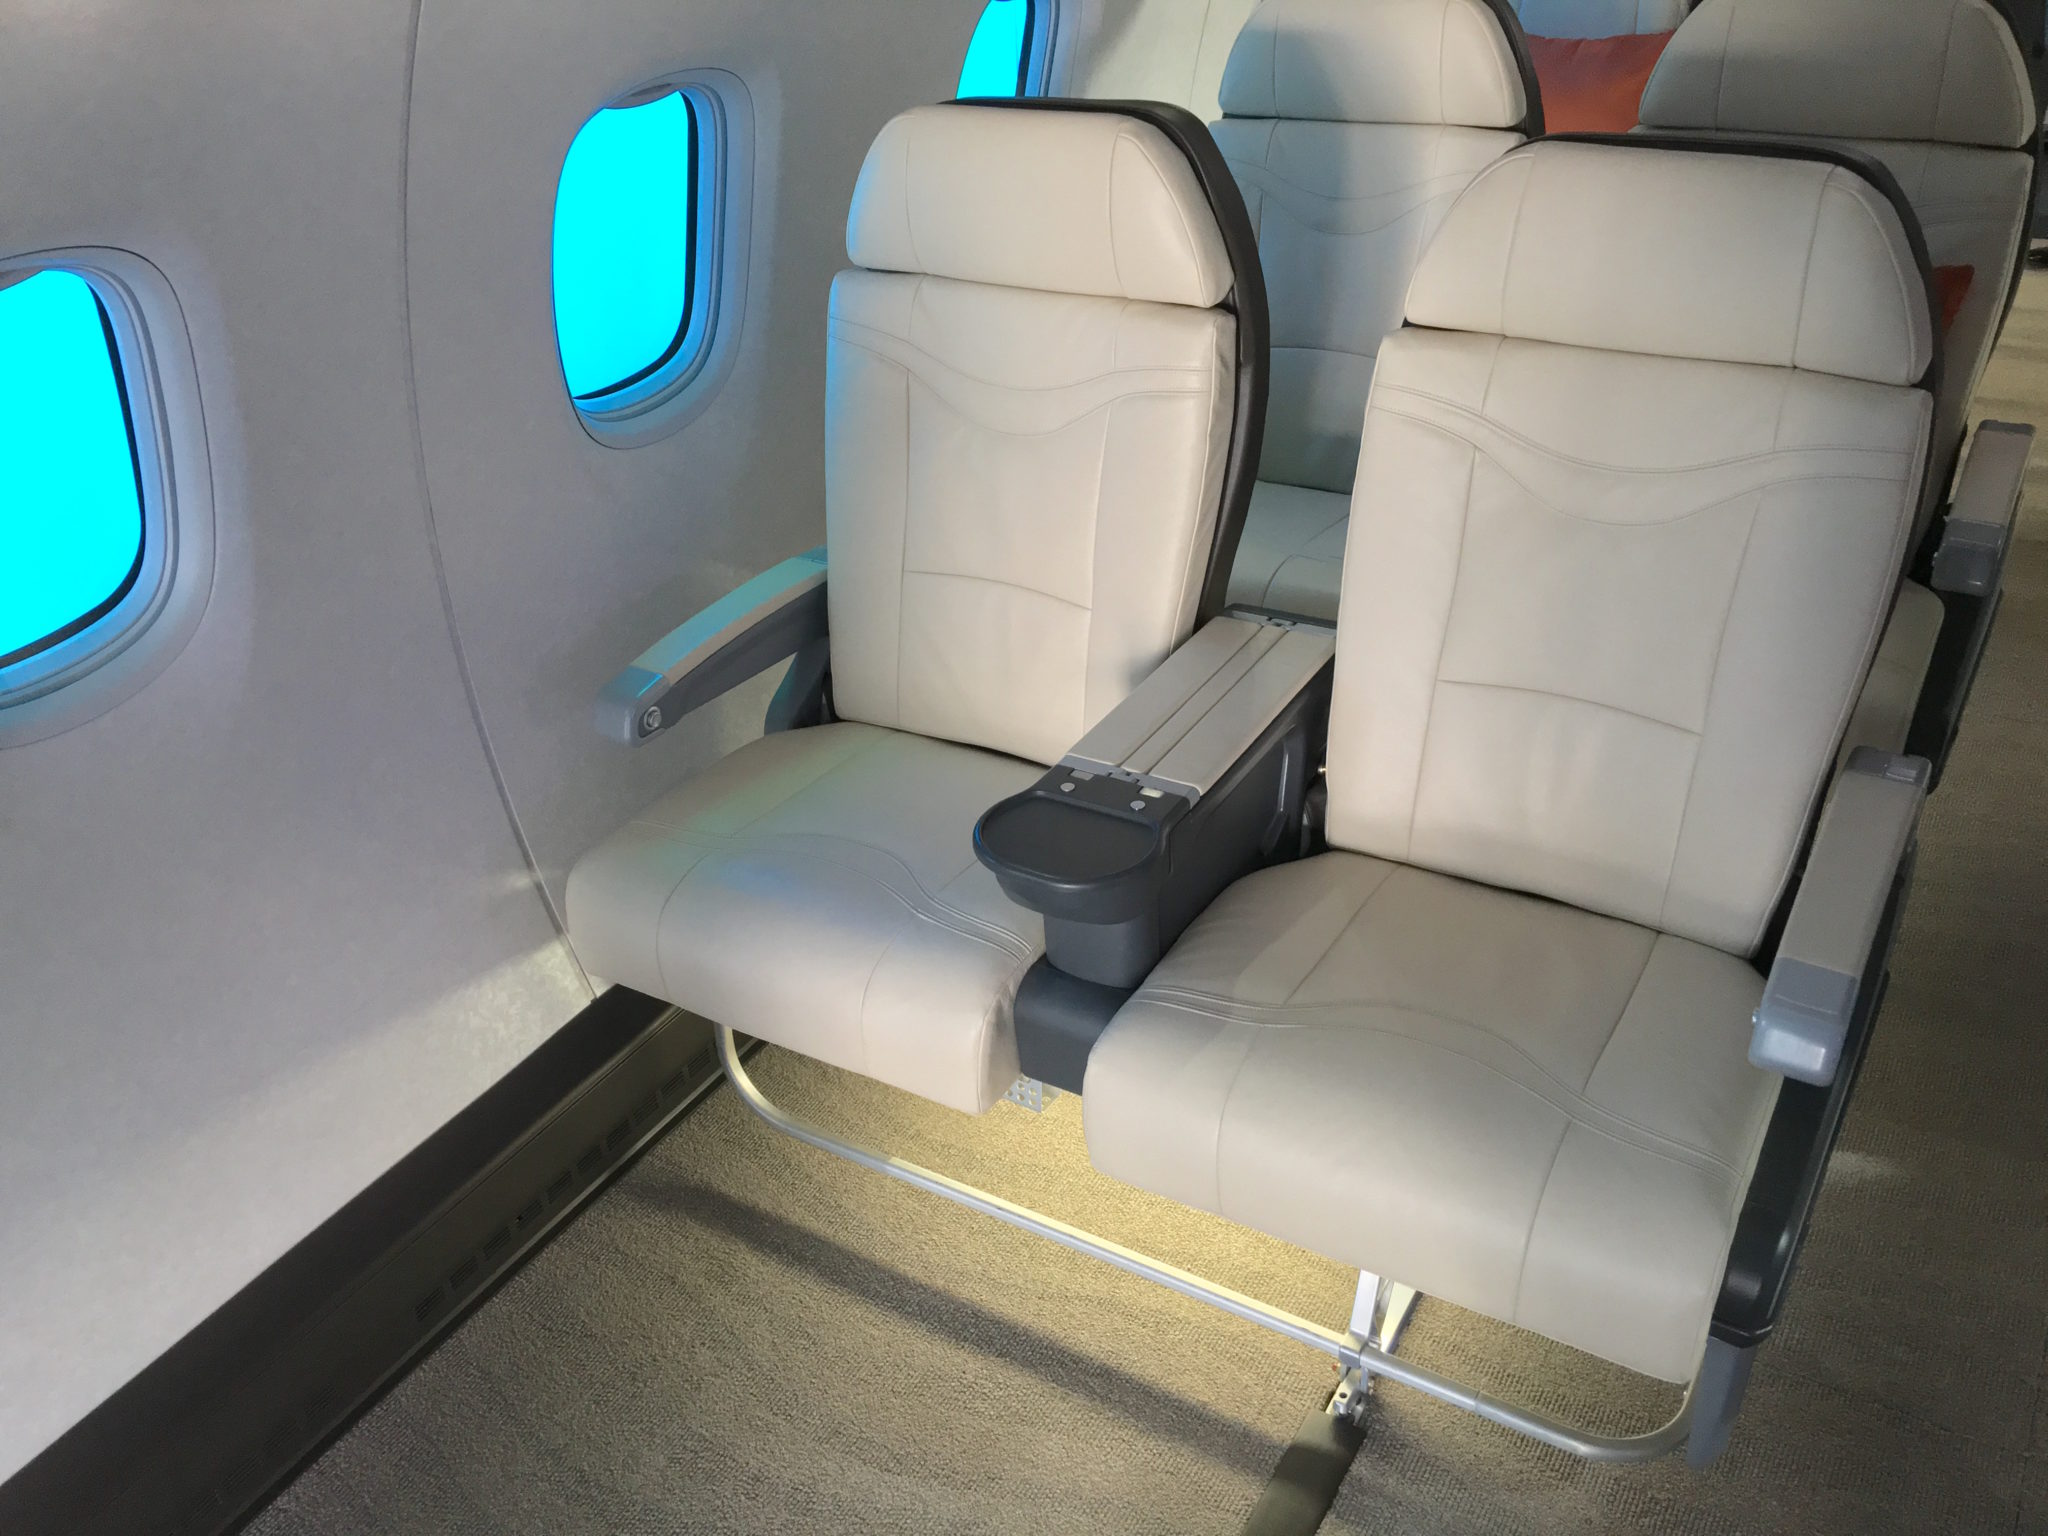 The MRJ's 2-1 seats are comparatively wide, although the relatively spaced out windows may not be ideal. Image: John Walton